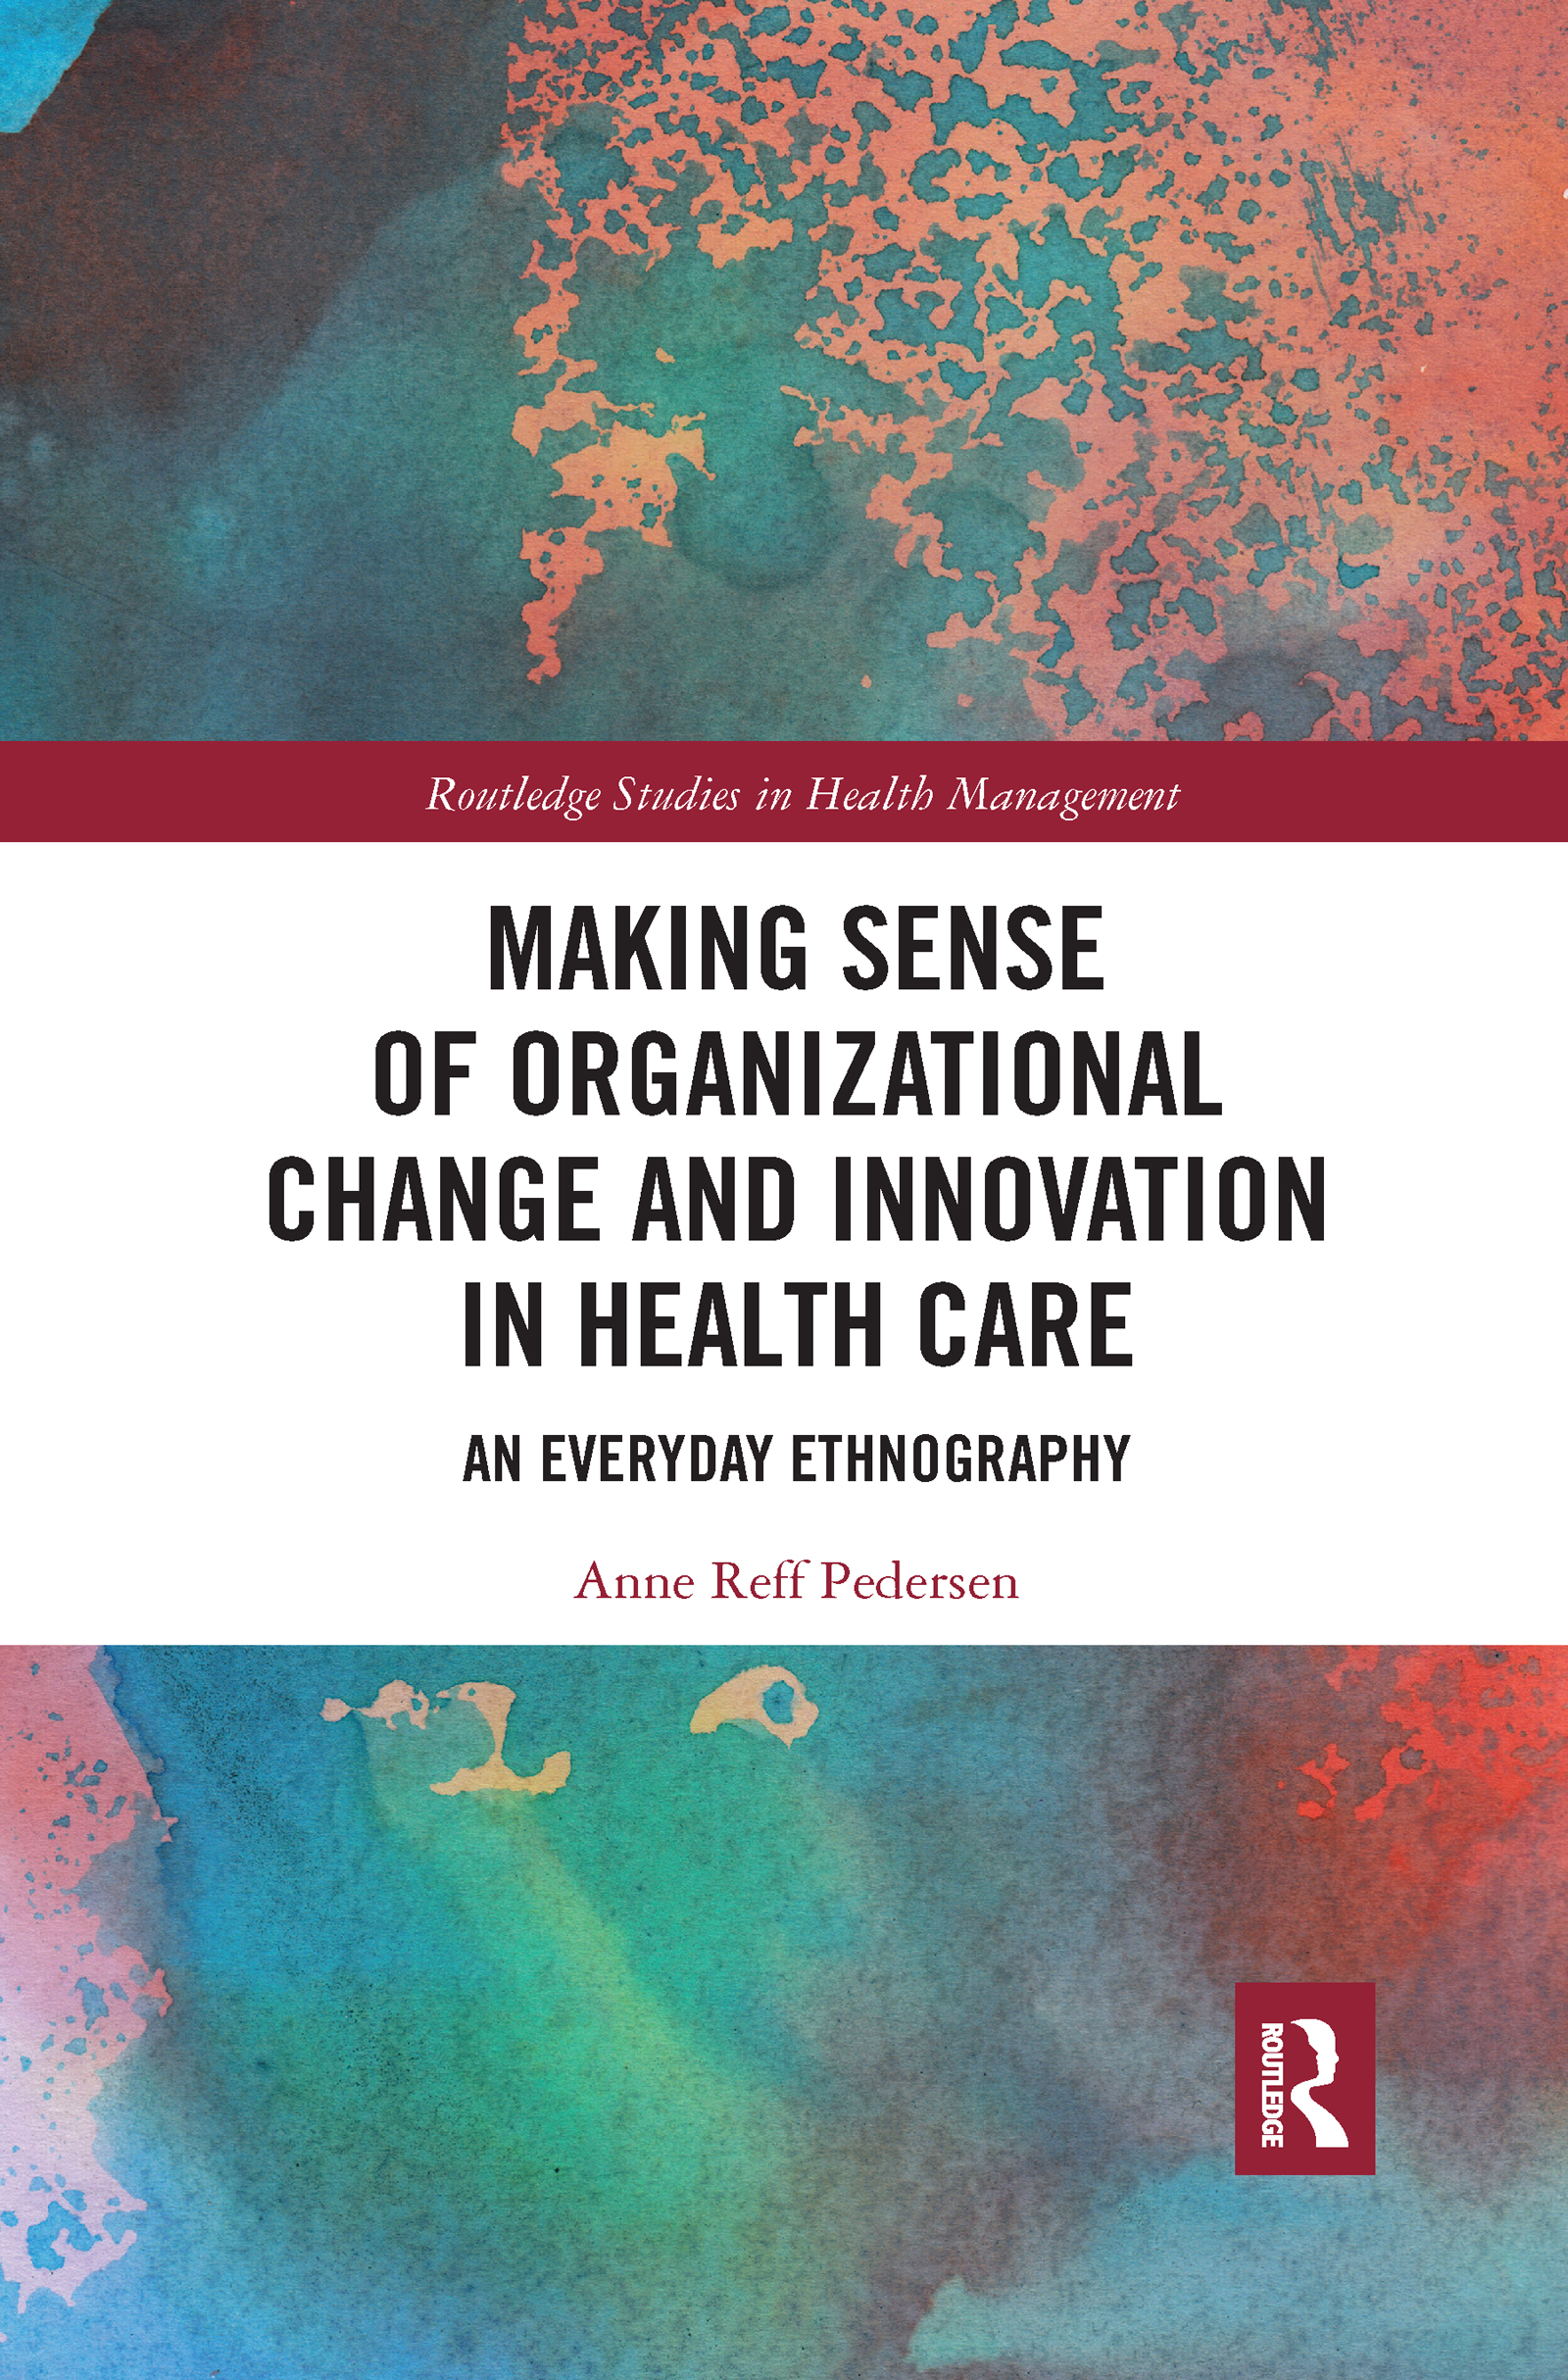 Making Sense of Organizational Change and Innovation in Health Care